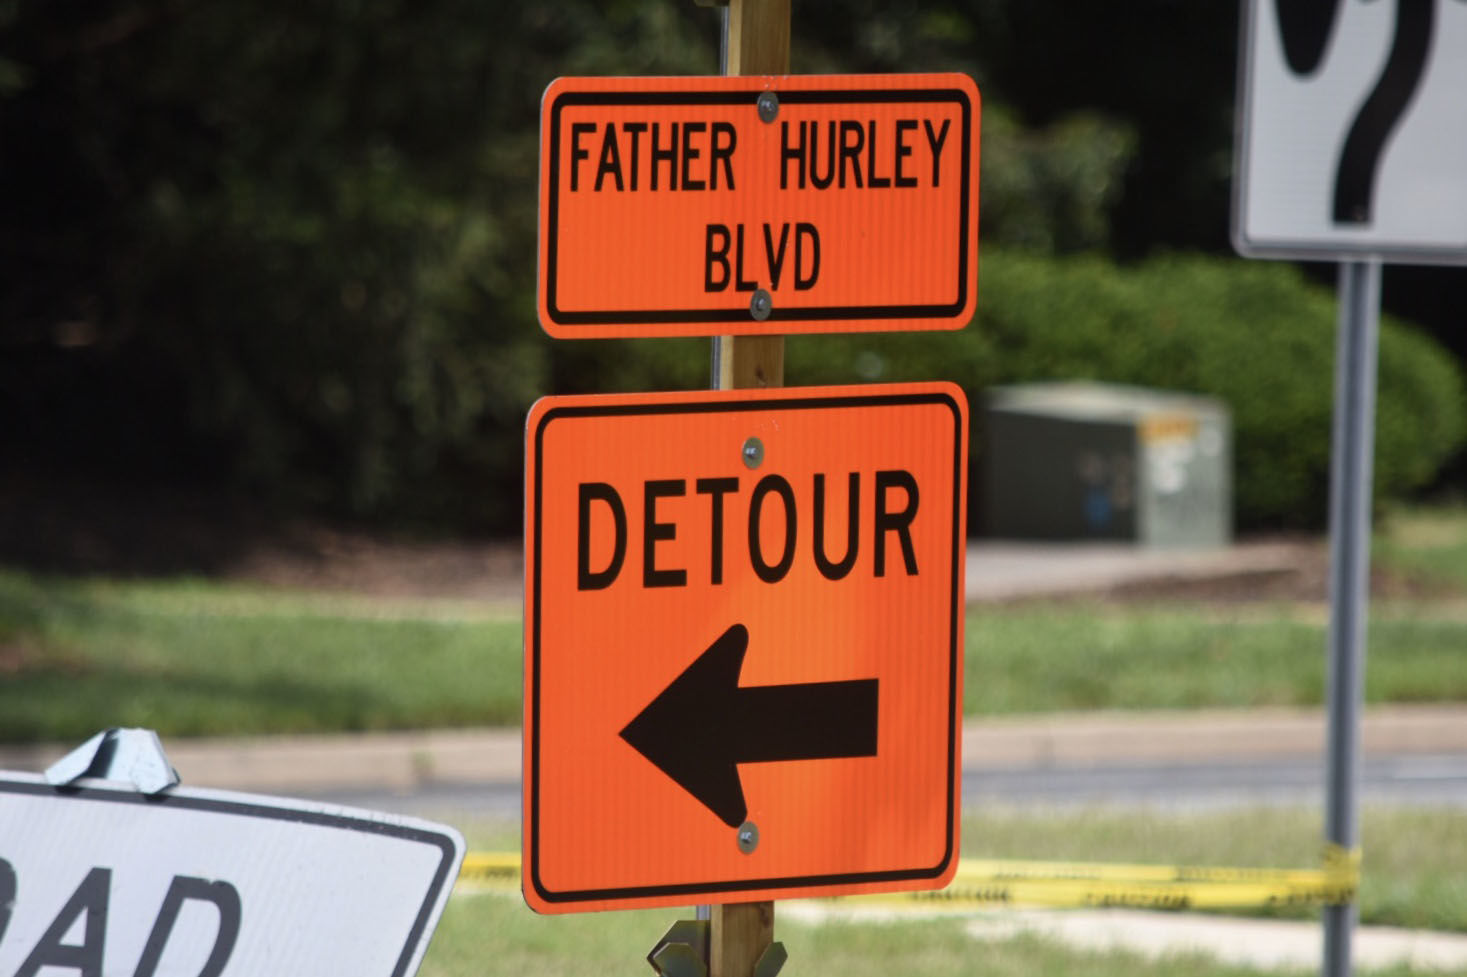 The work to fix the flood-damaged section of Father Hurley Boulevard between Crystal Rock Drive and Middlebrook Road near Waters Landing Drive continued July 24. (WTOP/Dave Dildine)